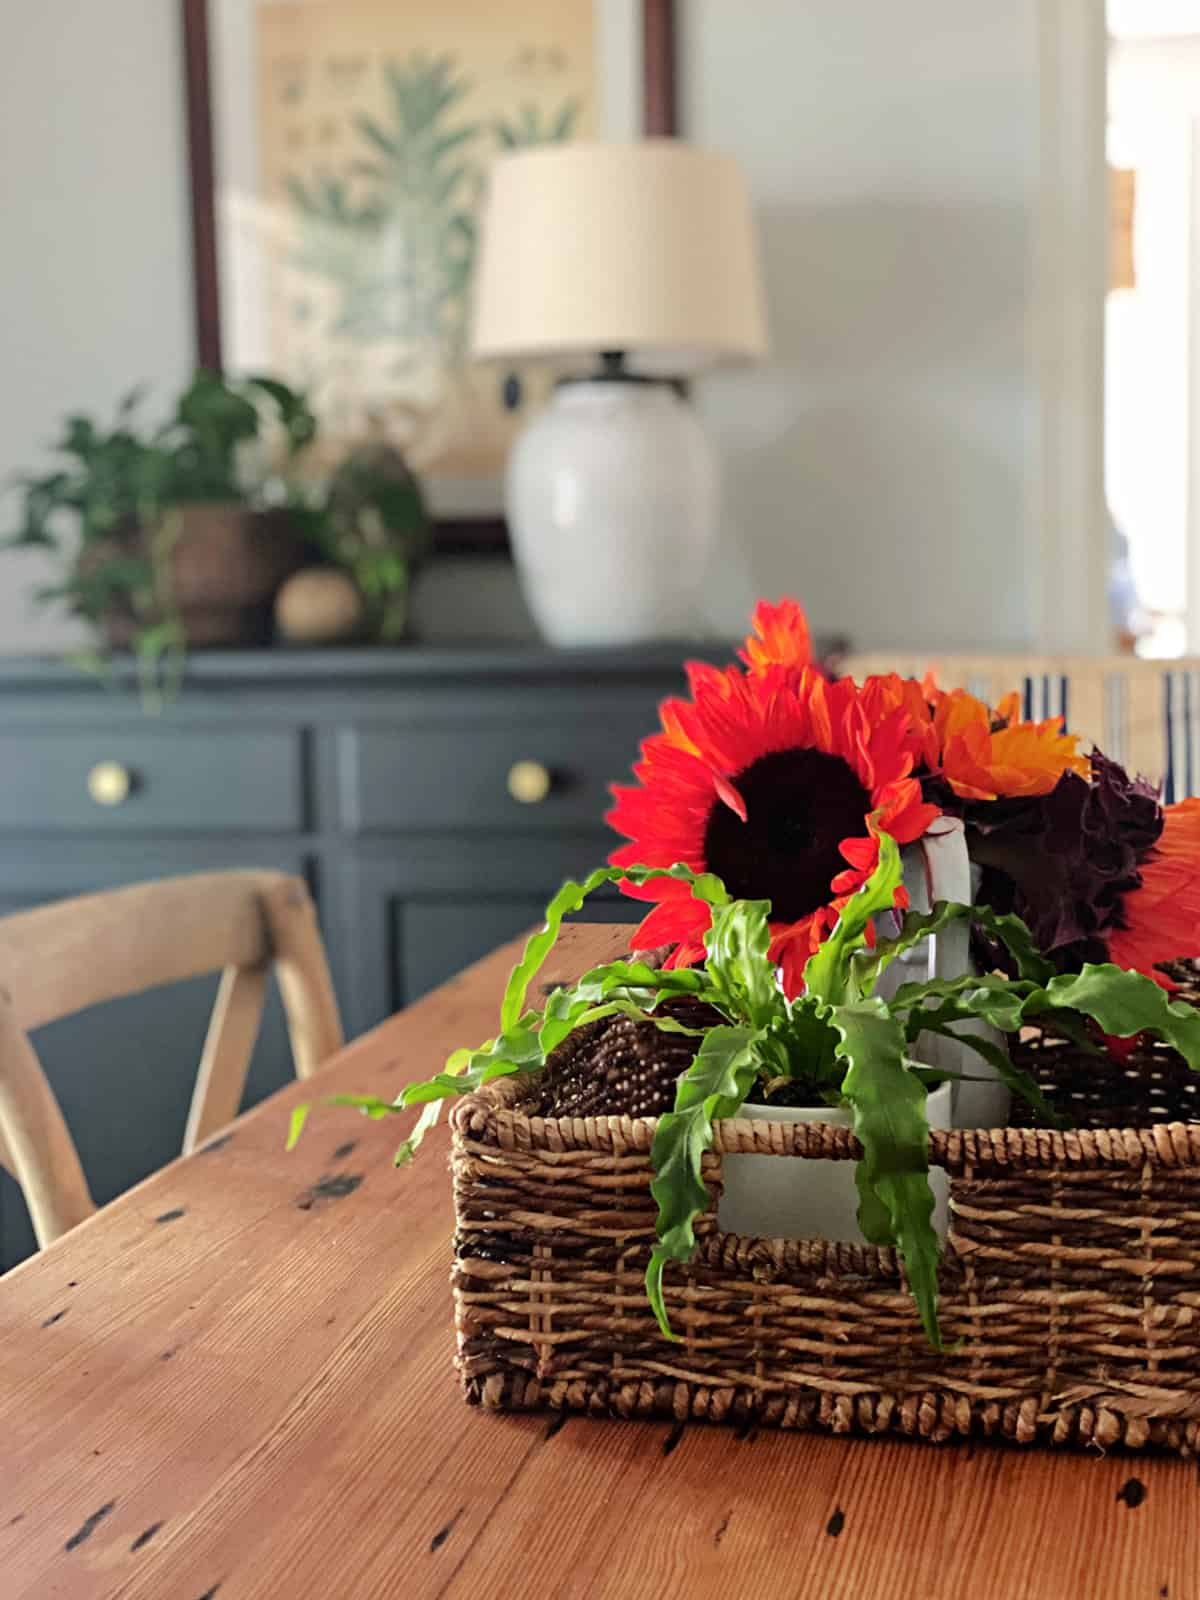 vase of sunflowers on dining room table